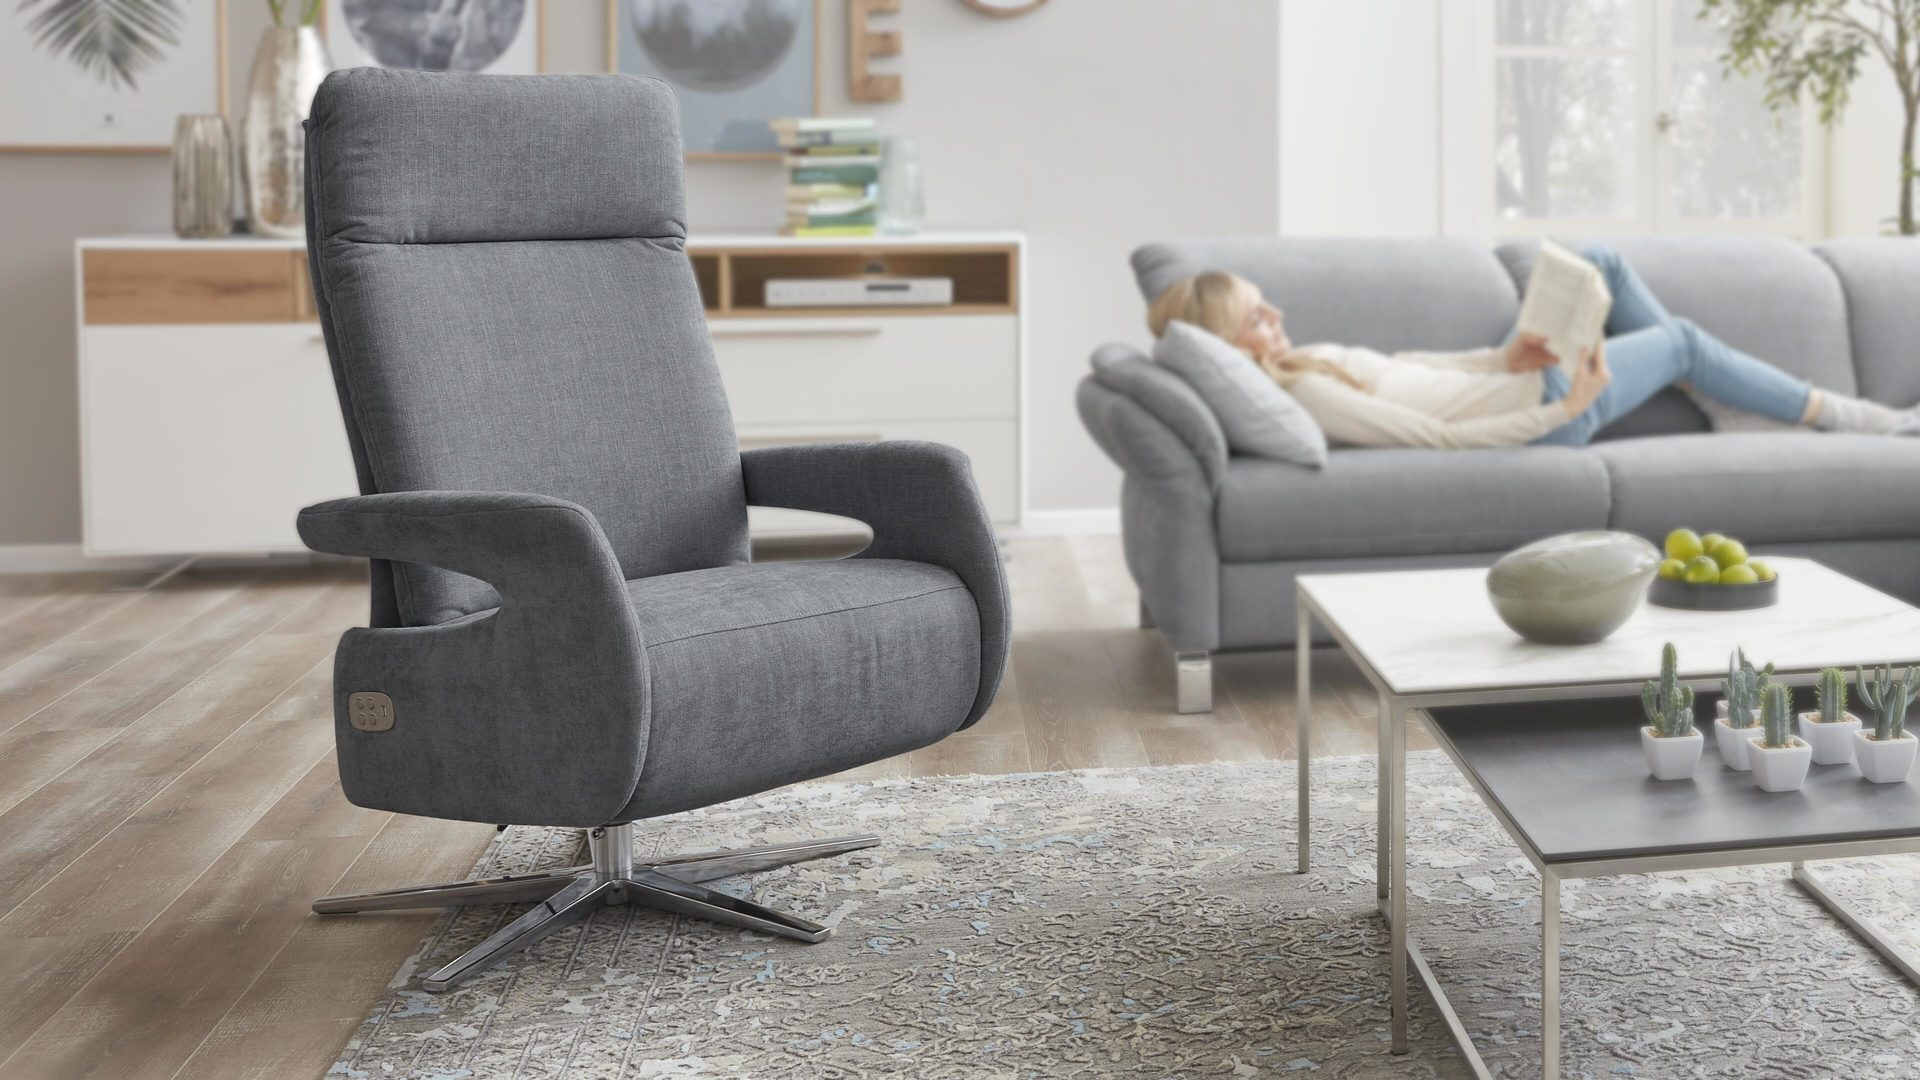 Relaxsessel 3c candy | il aus Stoff in Blau Interliving Sessel Serie 4510 – Relaxsessel jeansblauer Bezug Vintage & Sternfuß